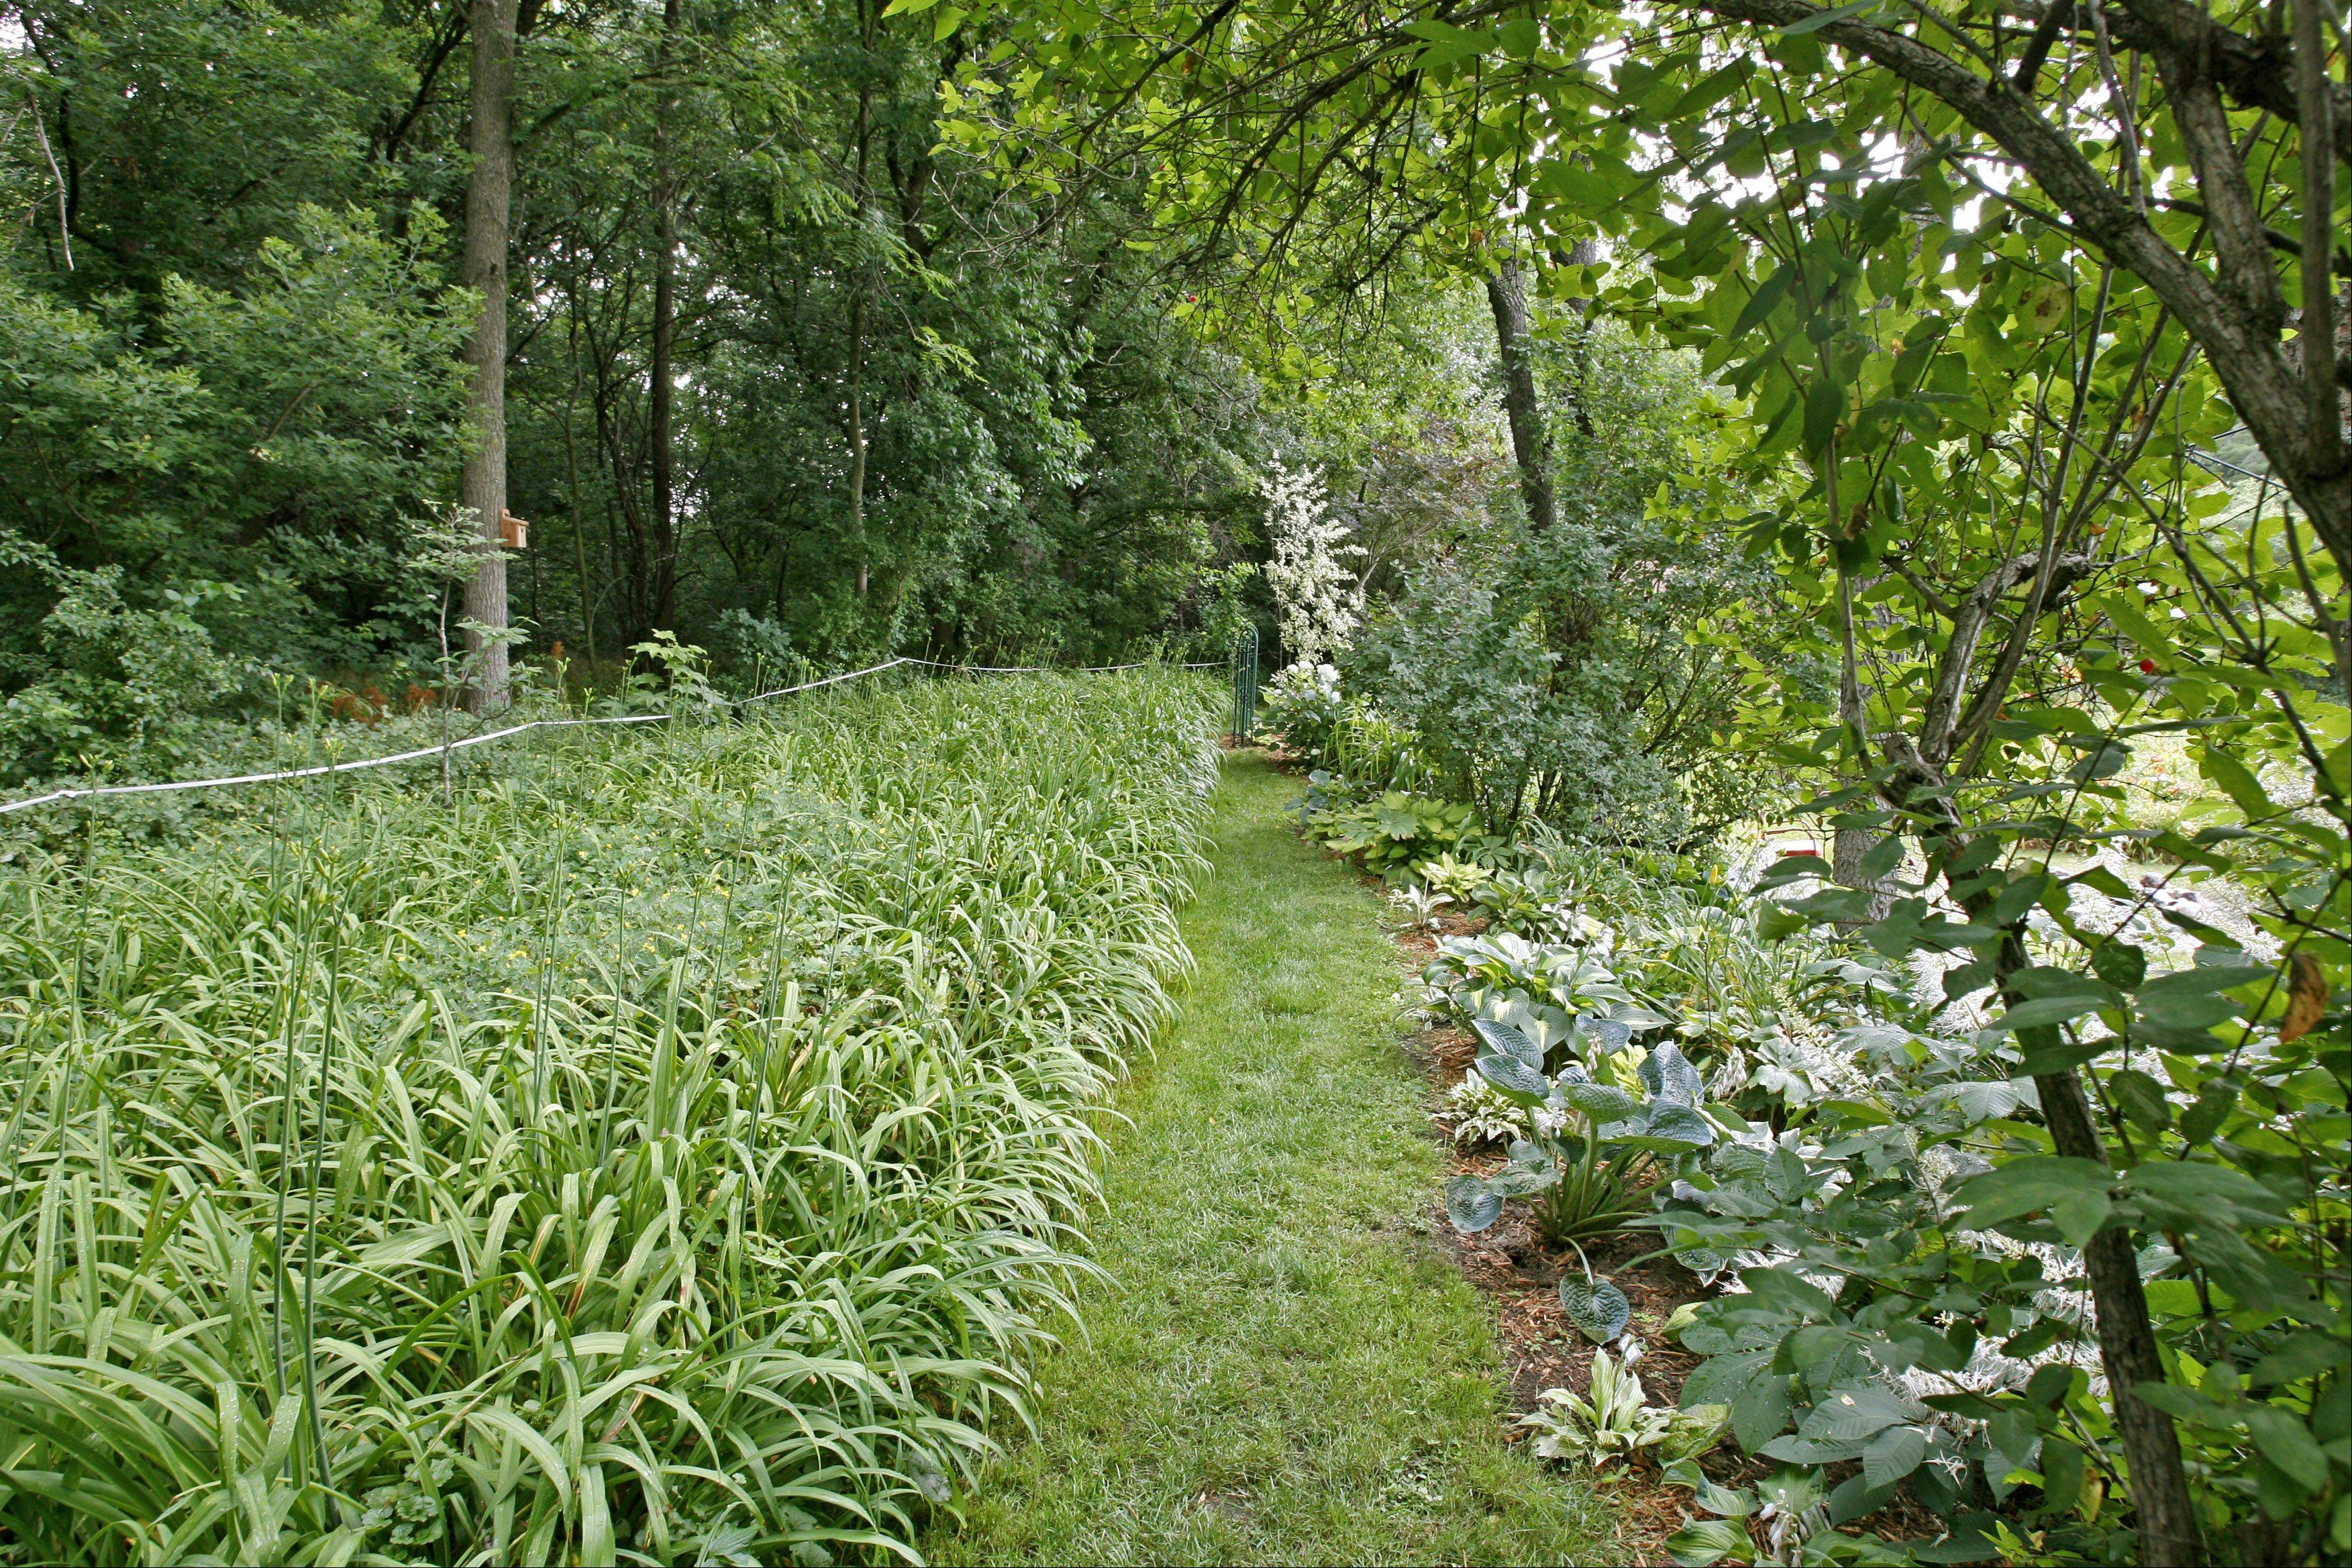 Hostas on the right are among Richter's treasures.